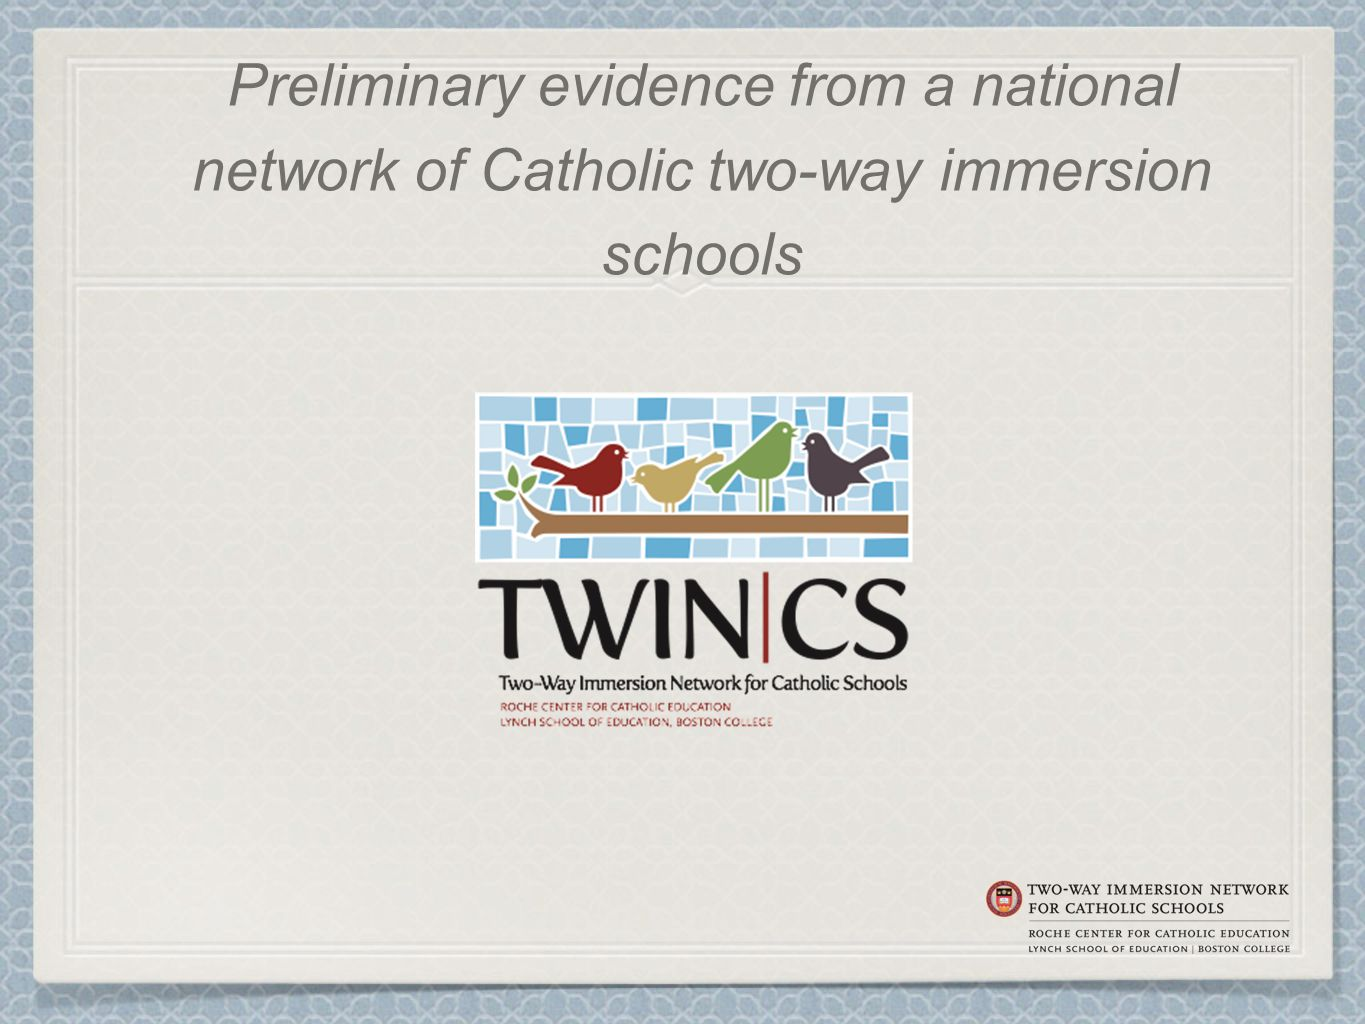 ObjectivesObjectives Deepen understanding of history of Catholic schools serving culturally and linguistically diverse students Recognize importance of learning in and across Catholic schools in this context ✤ TWIN-CS Identify implications from TWIN-CS for your school context